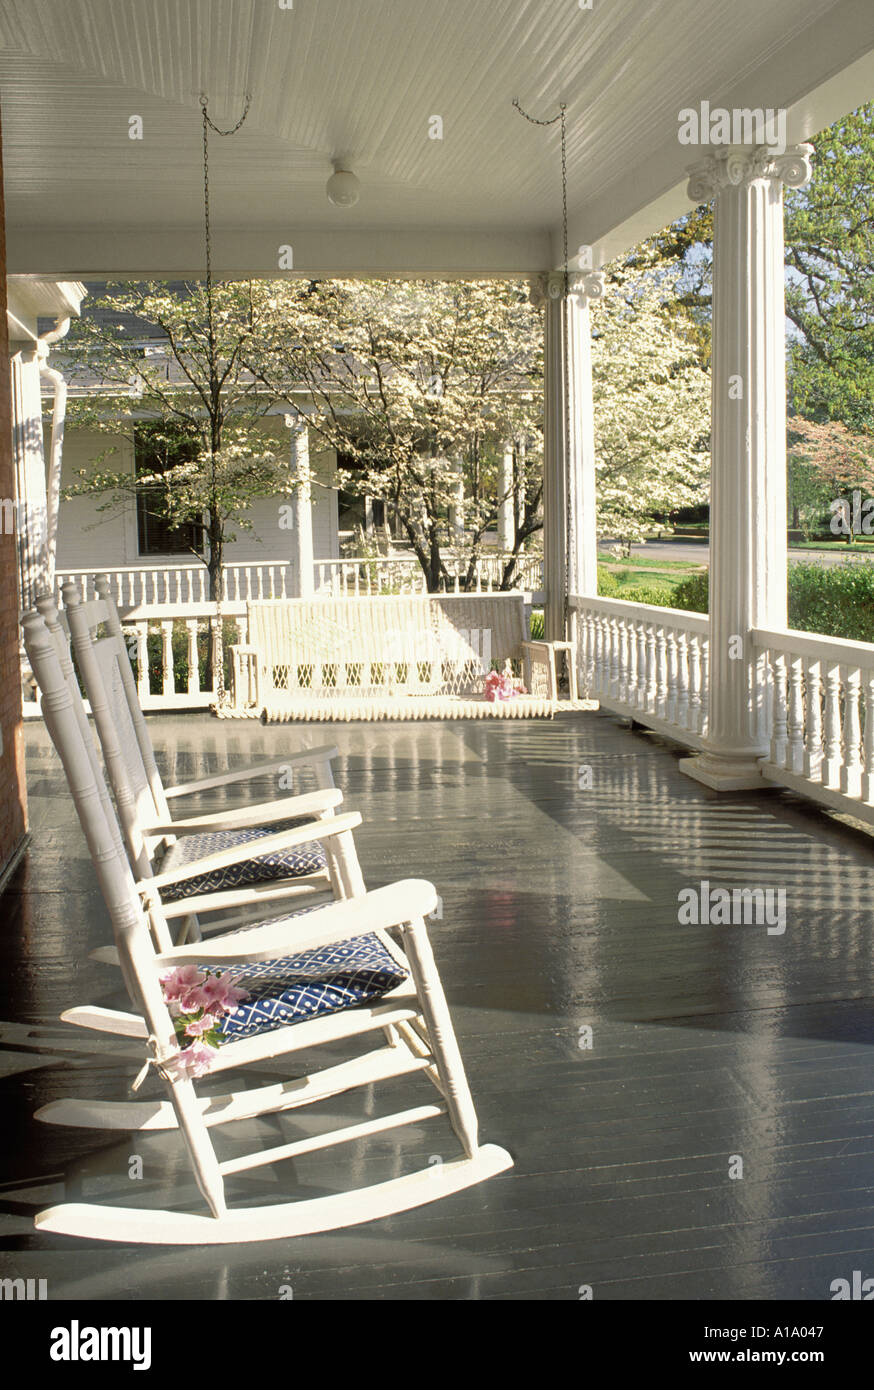 Fantastic Relax Traditional Southern Style Front Porch With Rocking Gmtry Best Dining Table And Chair Ideas Images Gmtryco